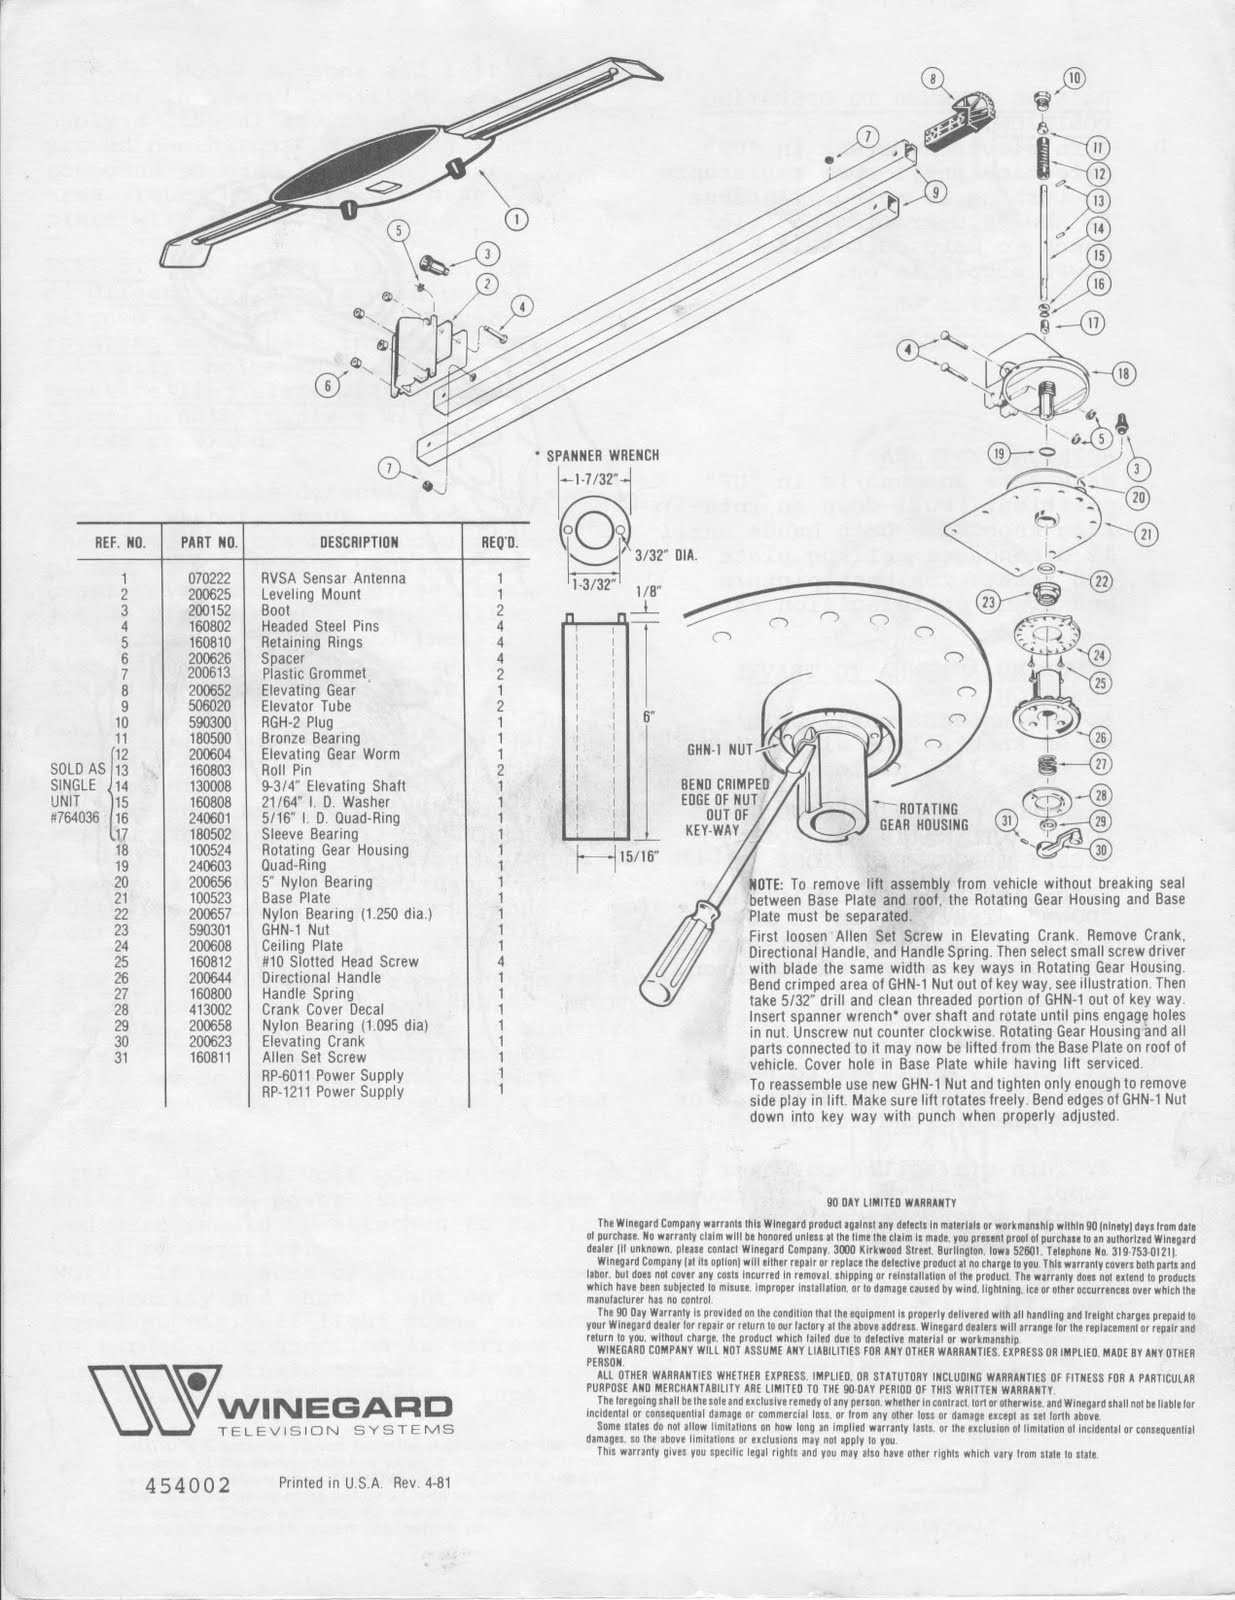 winegard rv satellite wiring diagram inside 1971 plymouth satellite wiring diagram #14